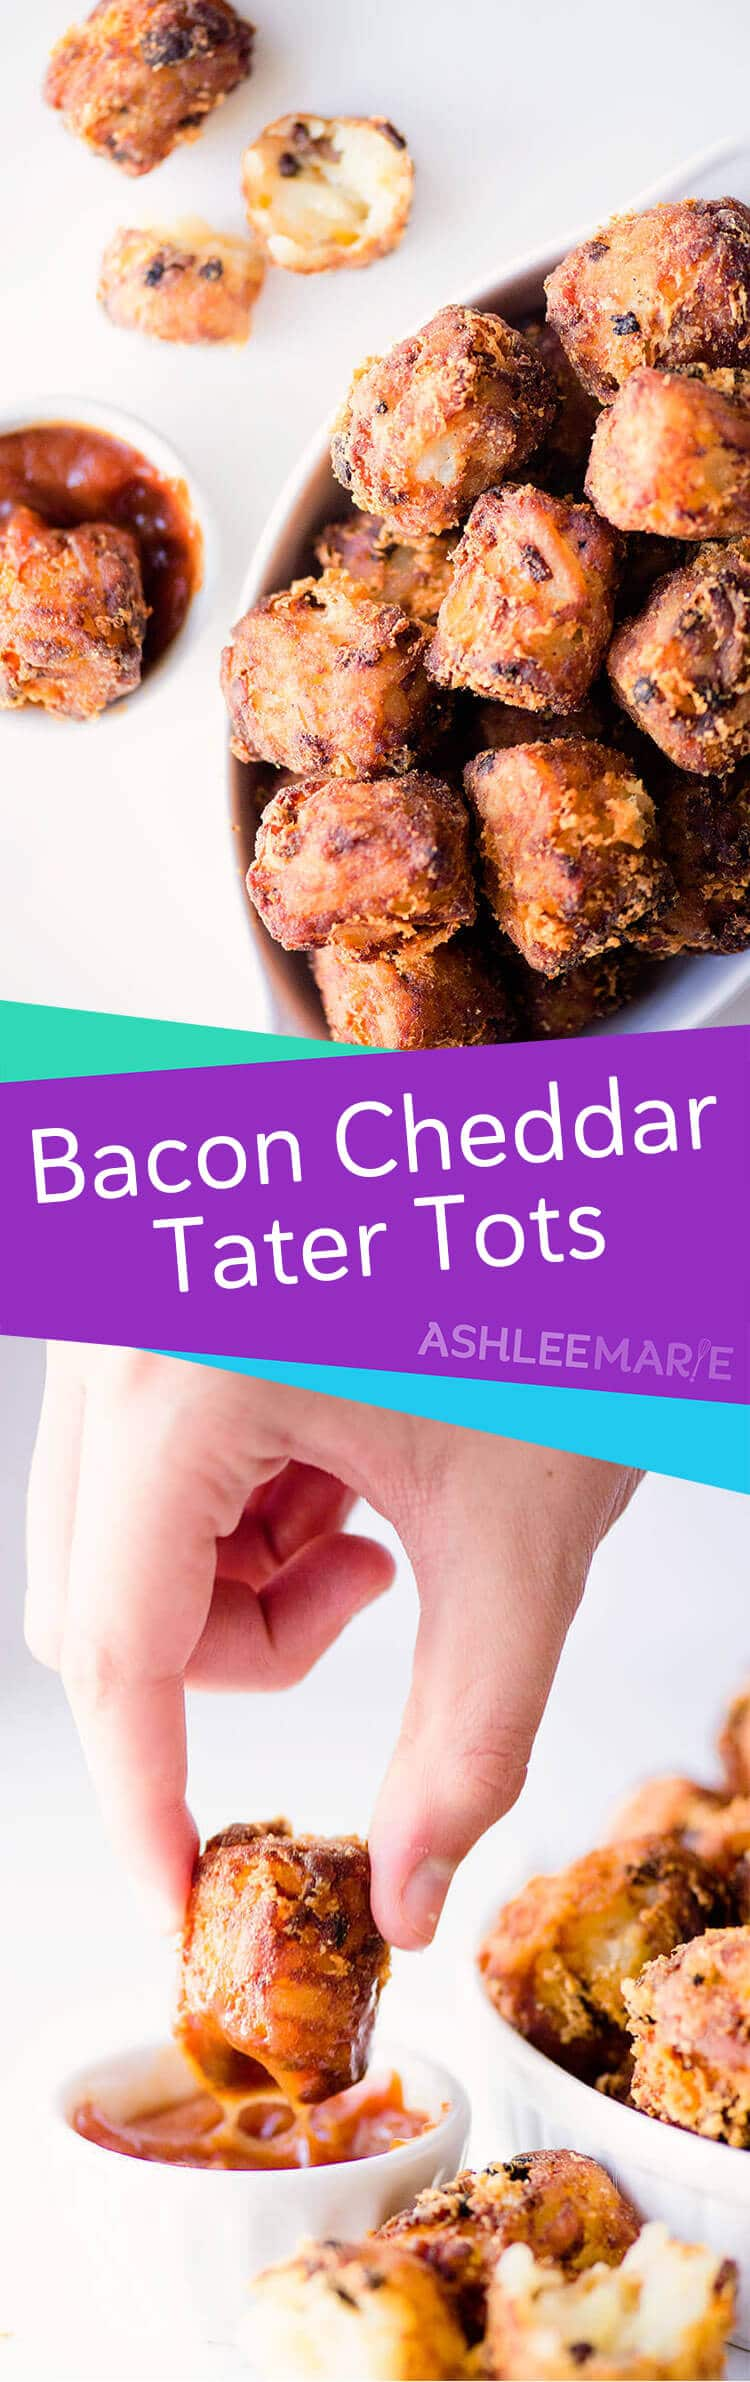 bacon cheddar tater tots